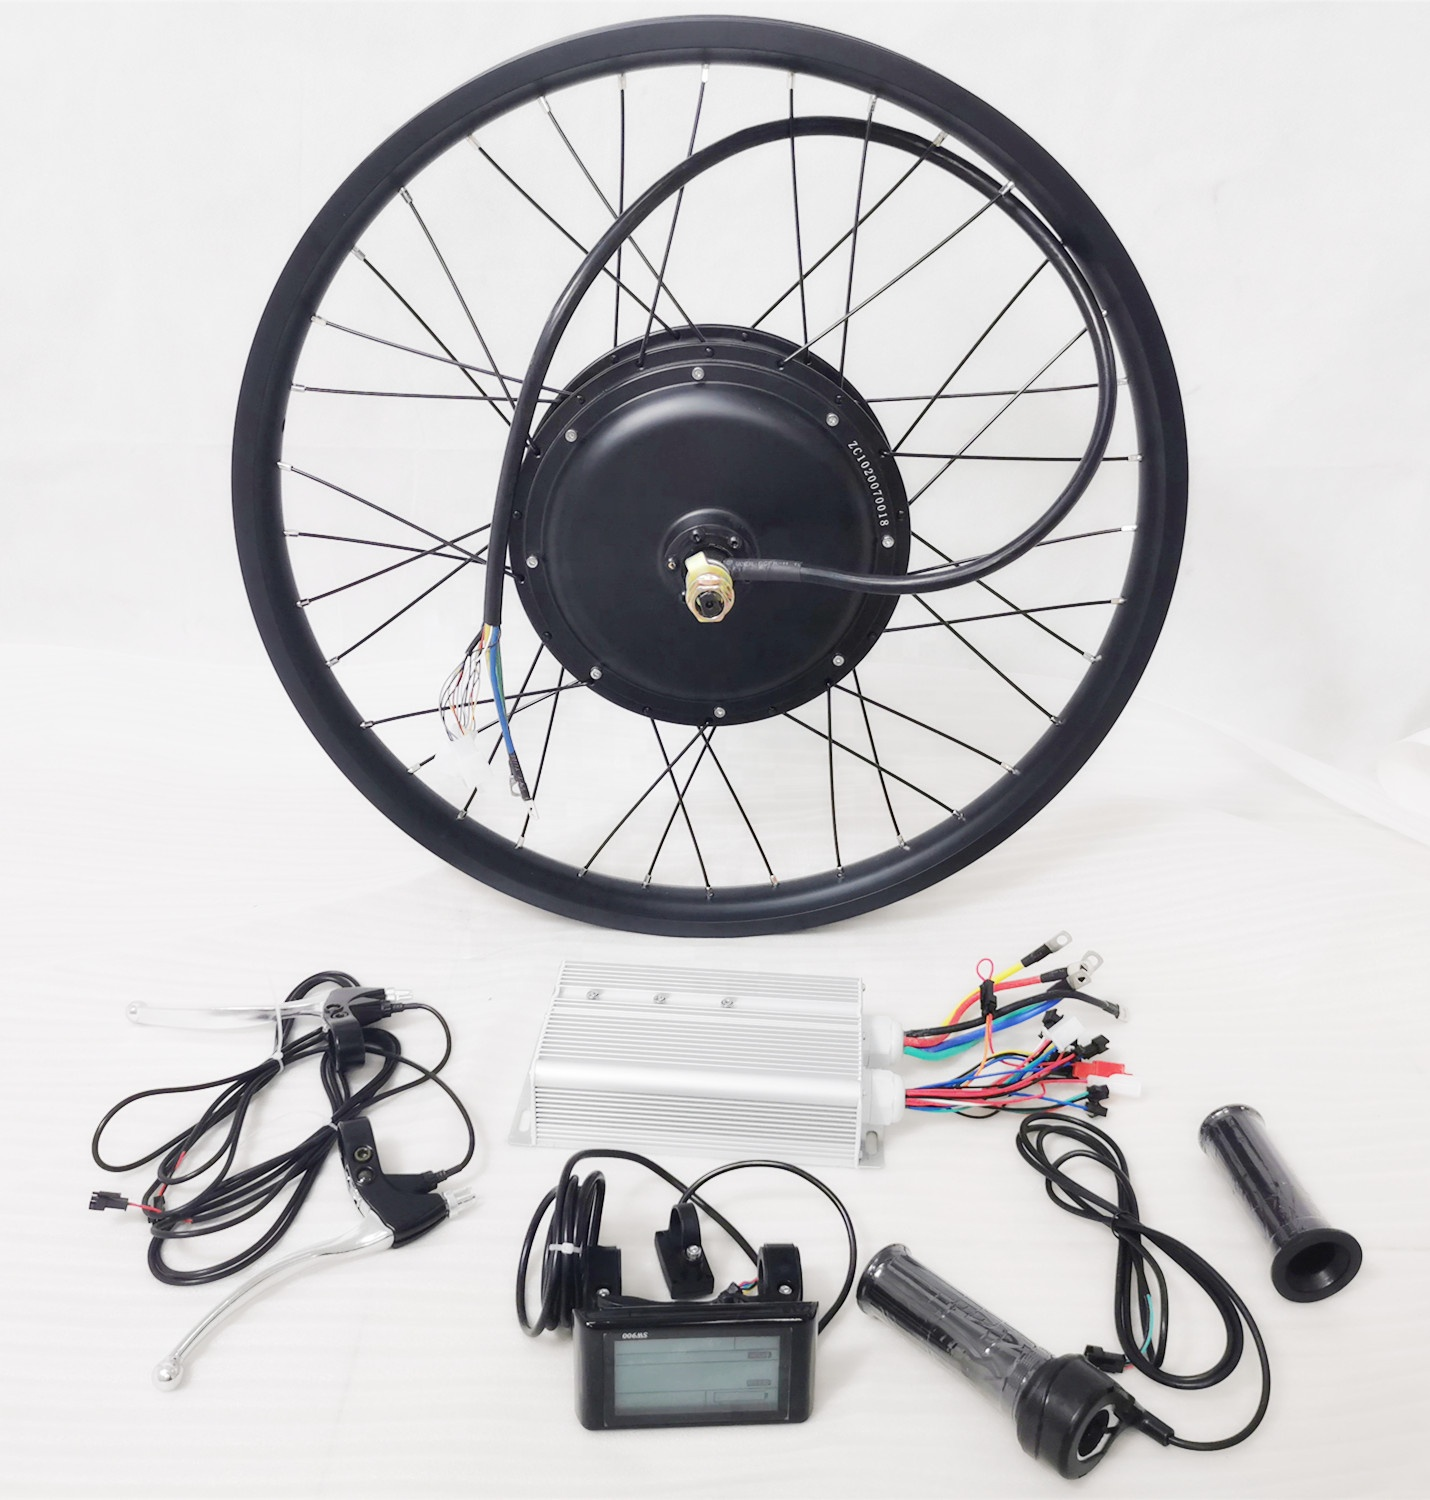 36v 48v electric bicycle conversion kits with battery